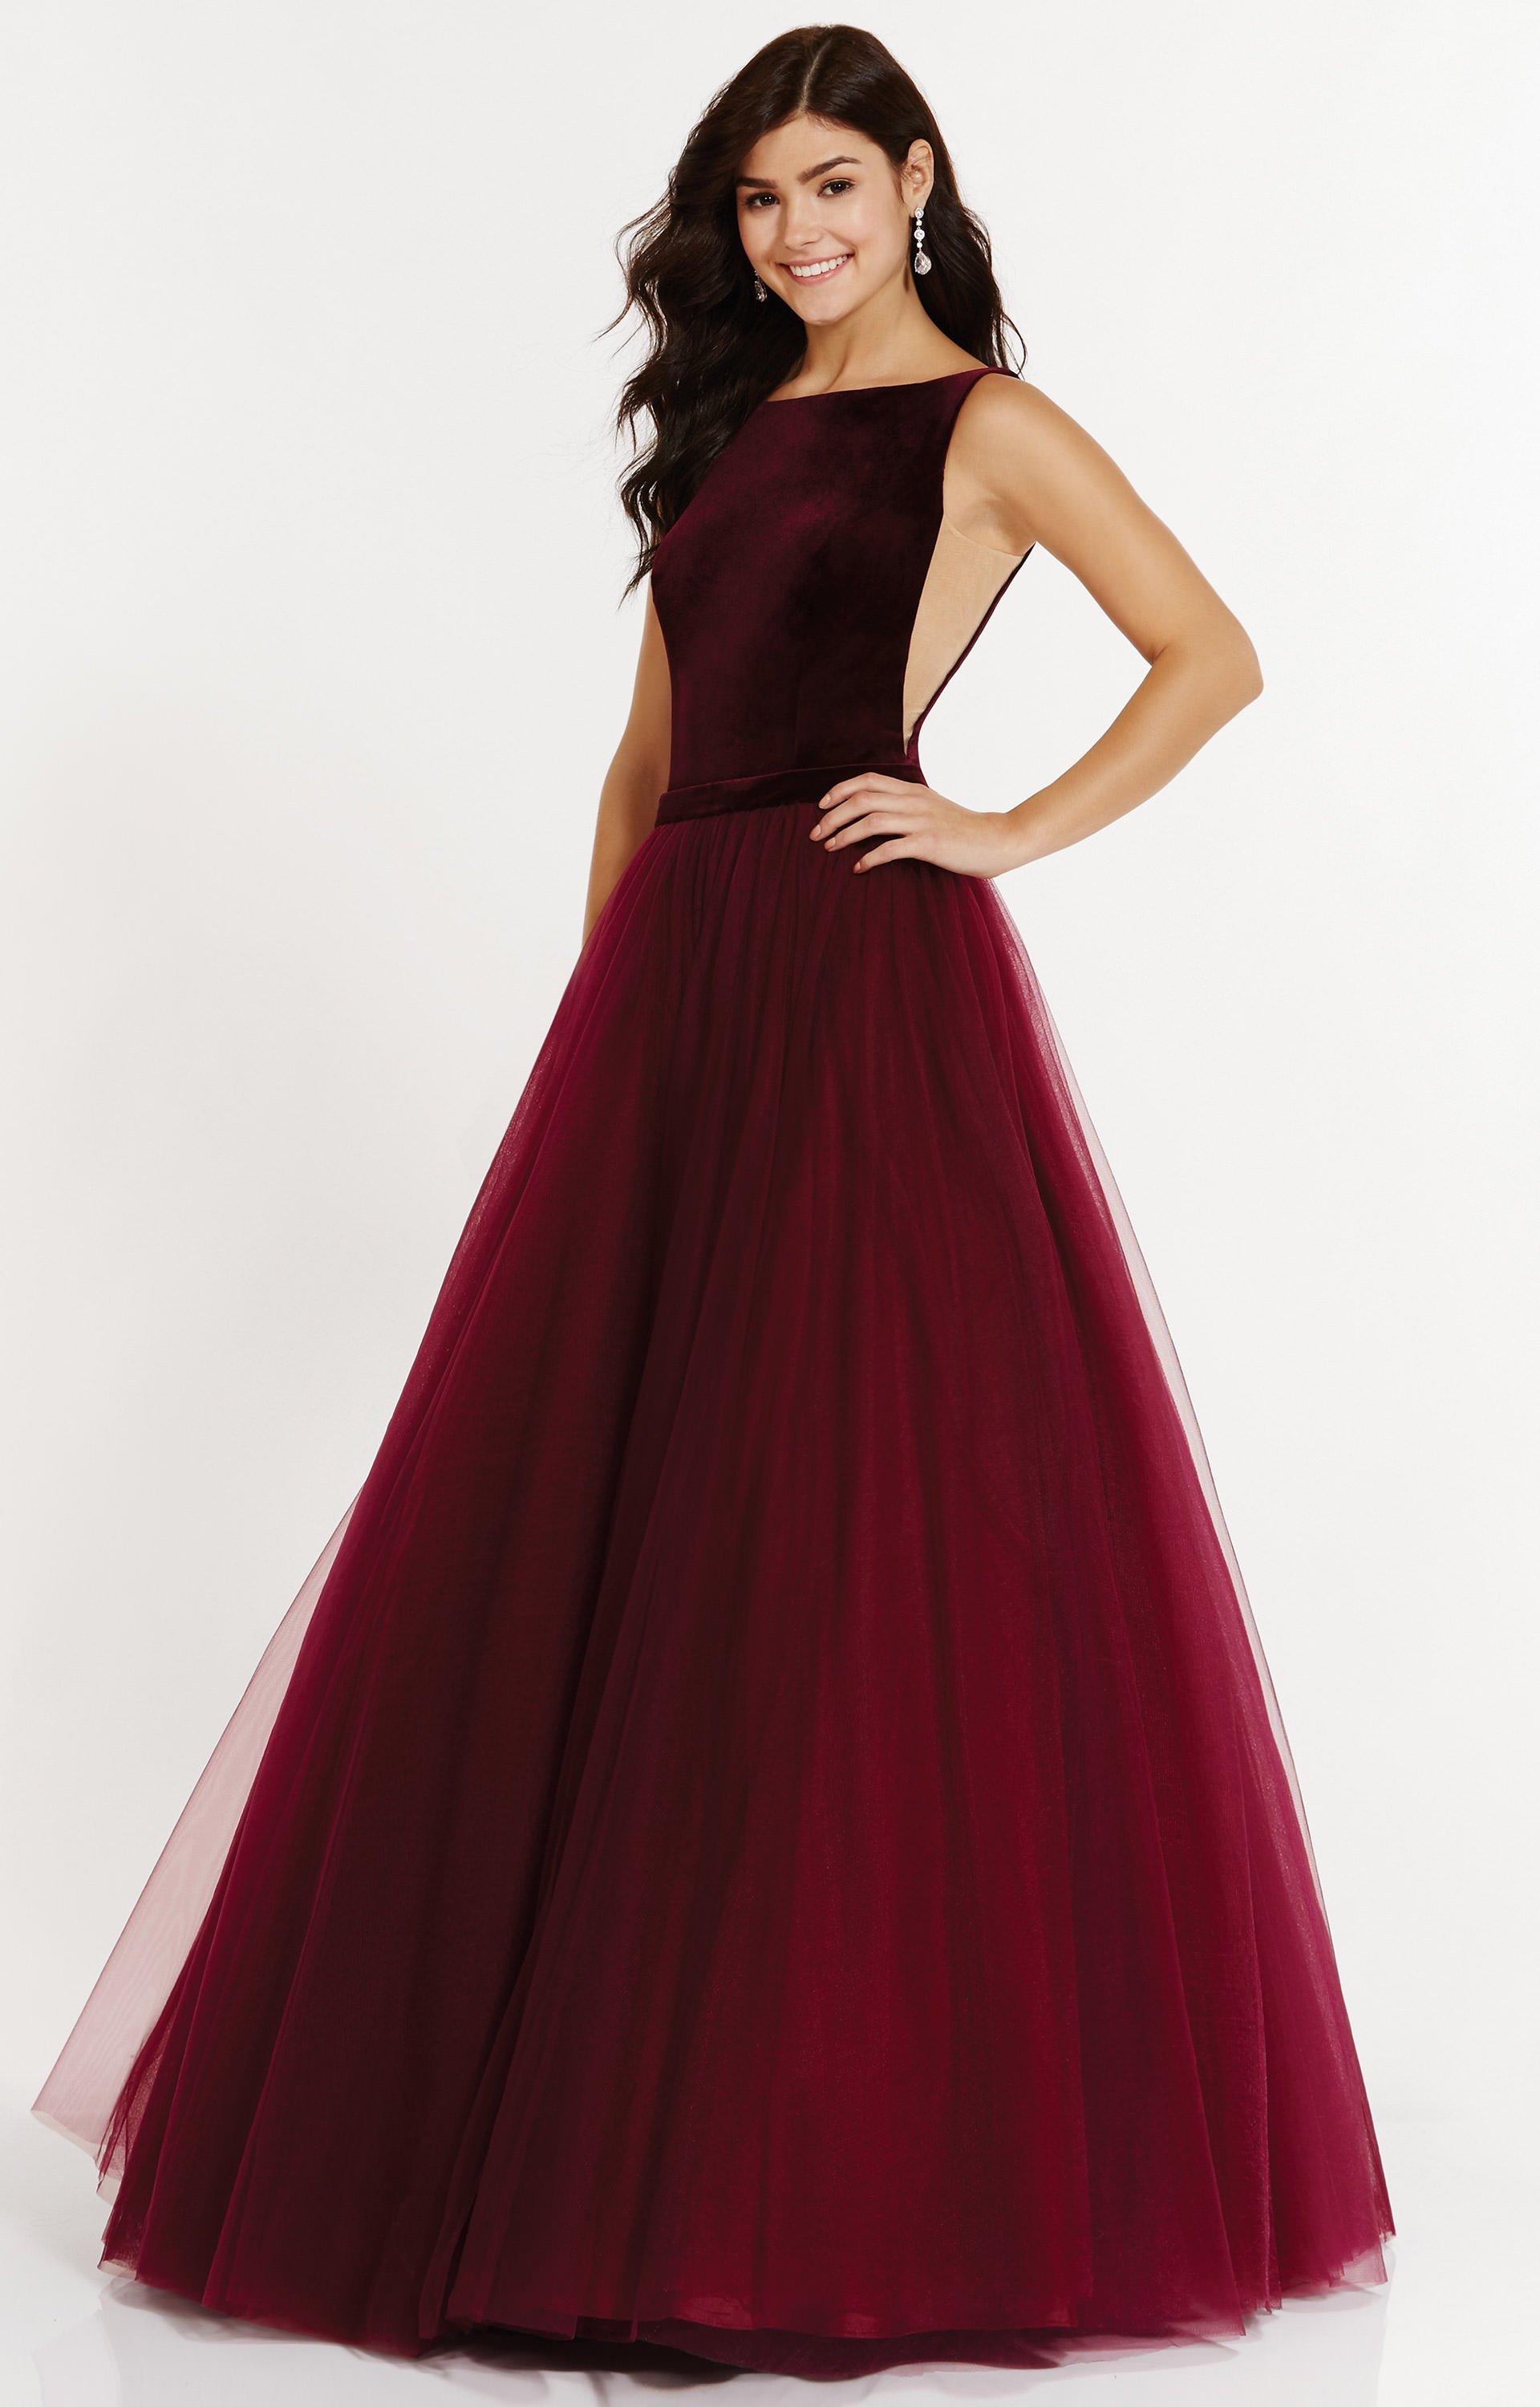 Alyce Paris 6792 High Neck Tulle Ballgown With Velvet